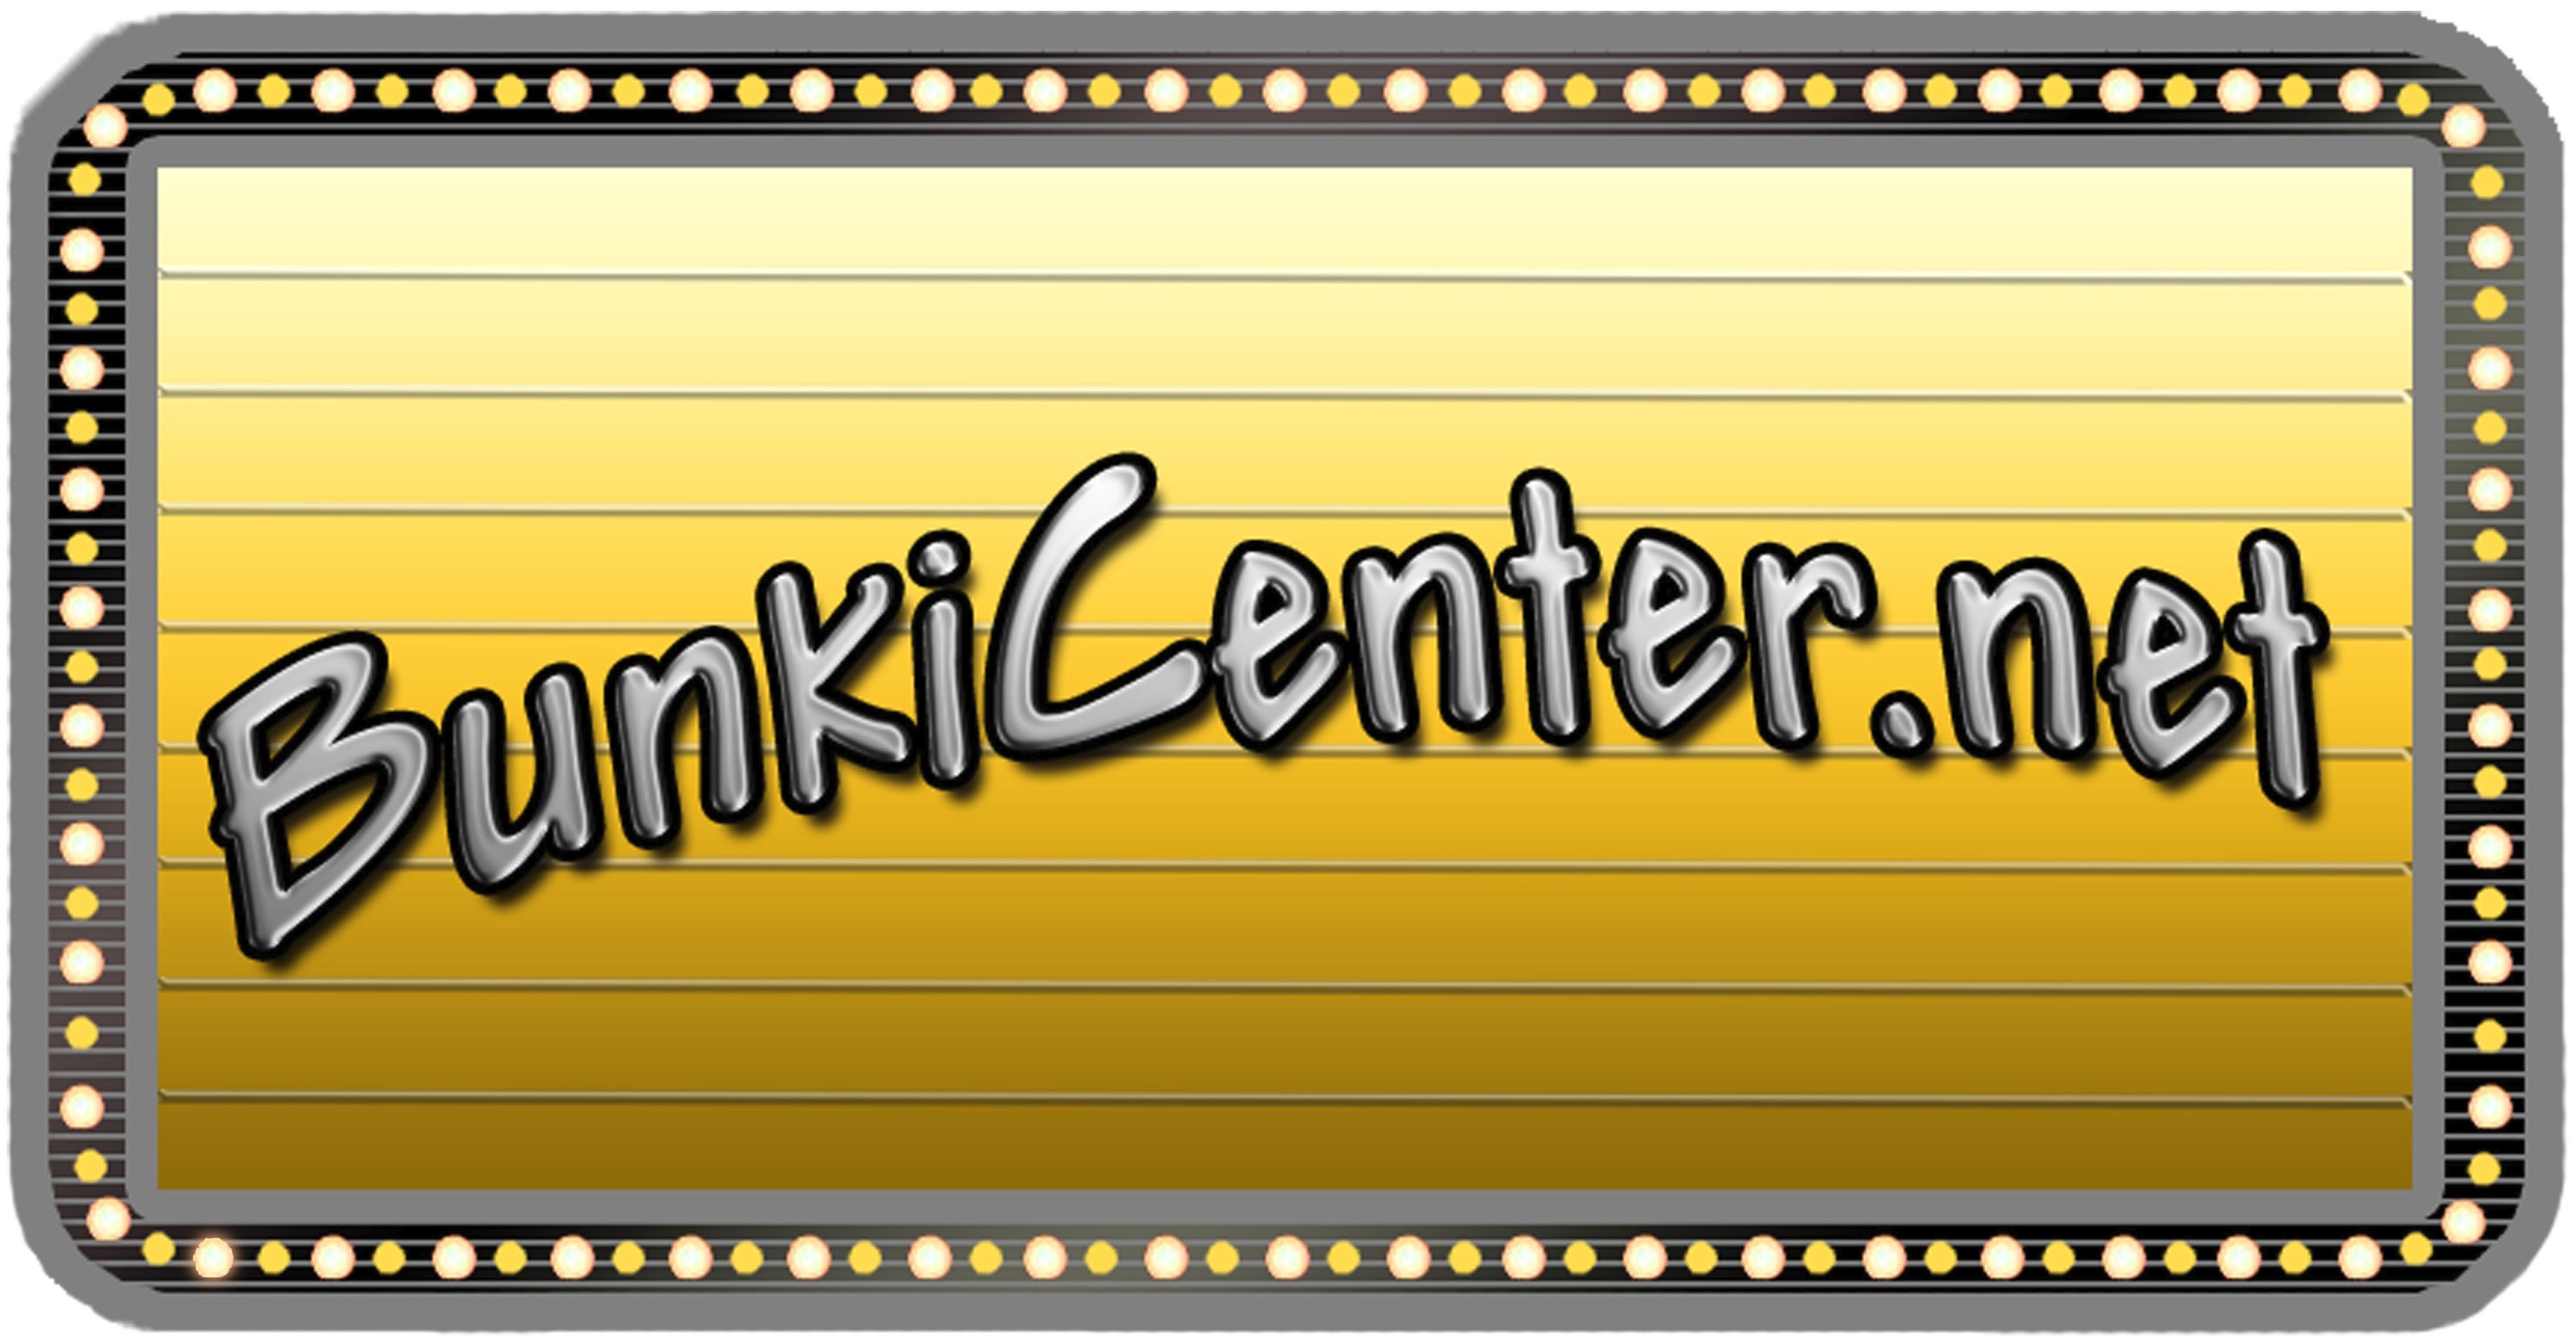 The BunkiCenter logo: It has a gold background, with silver text which is outlined in black and slightly curves. The B in Bunki is just below the T in .Net. The border is designed to look like a billboard, with a large then a small light placed for every other light. The lights run around the inner perimeter, which is black. The text: BunkiCenter.net is centered on the billboard.